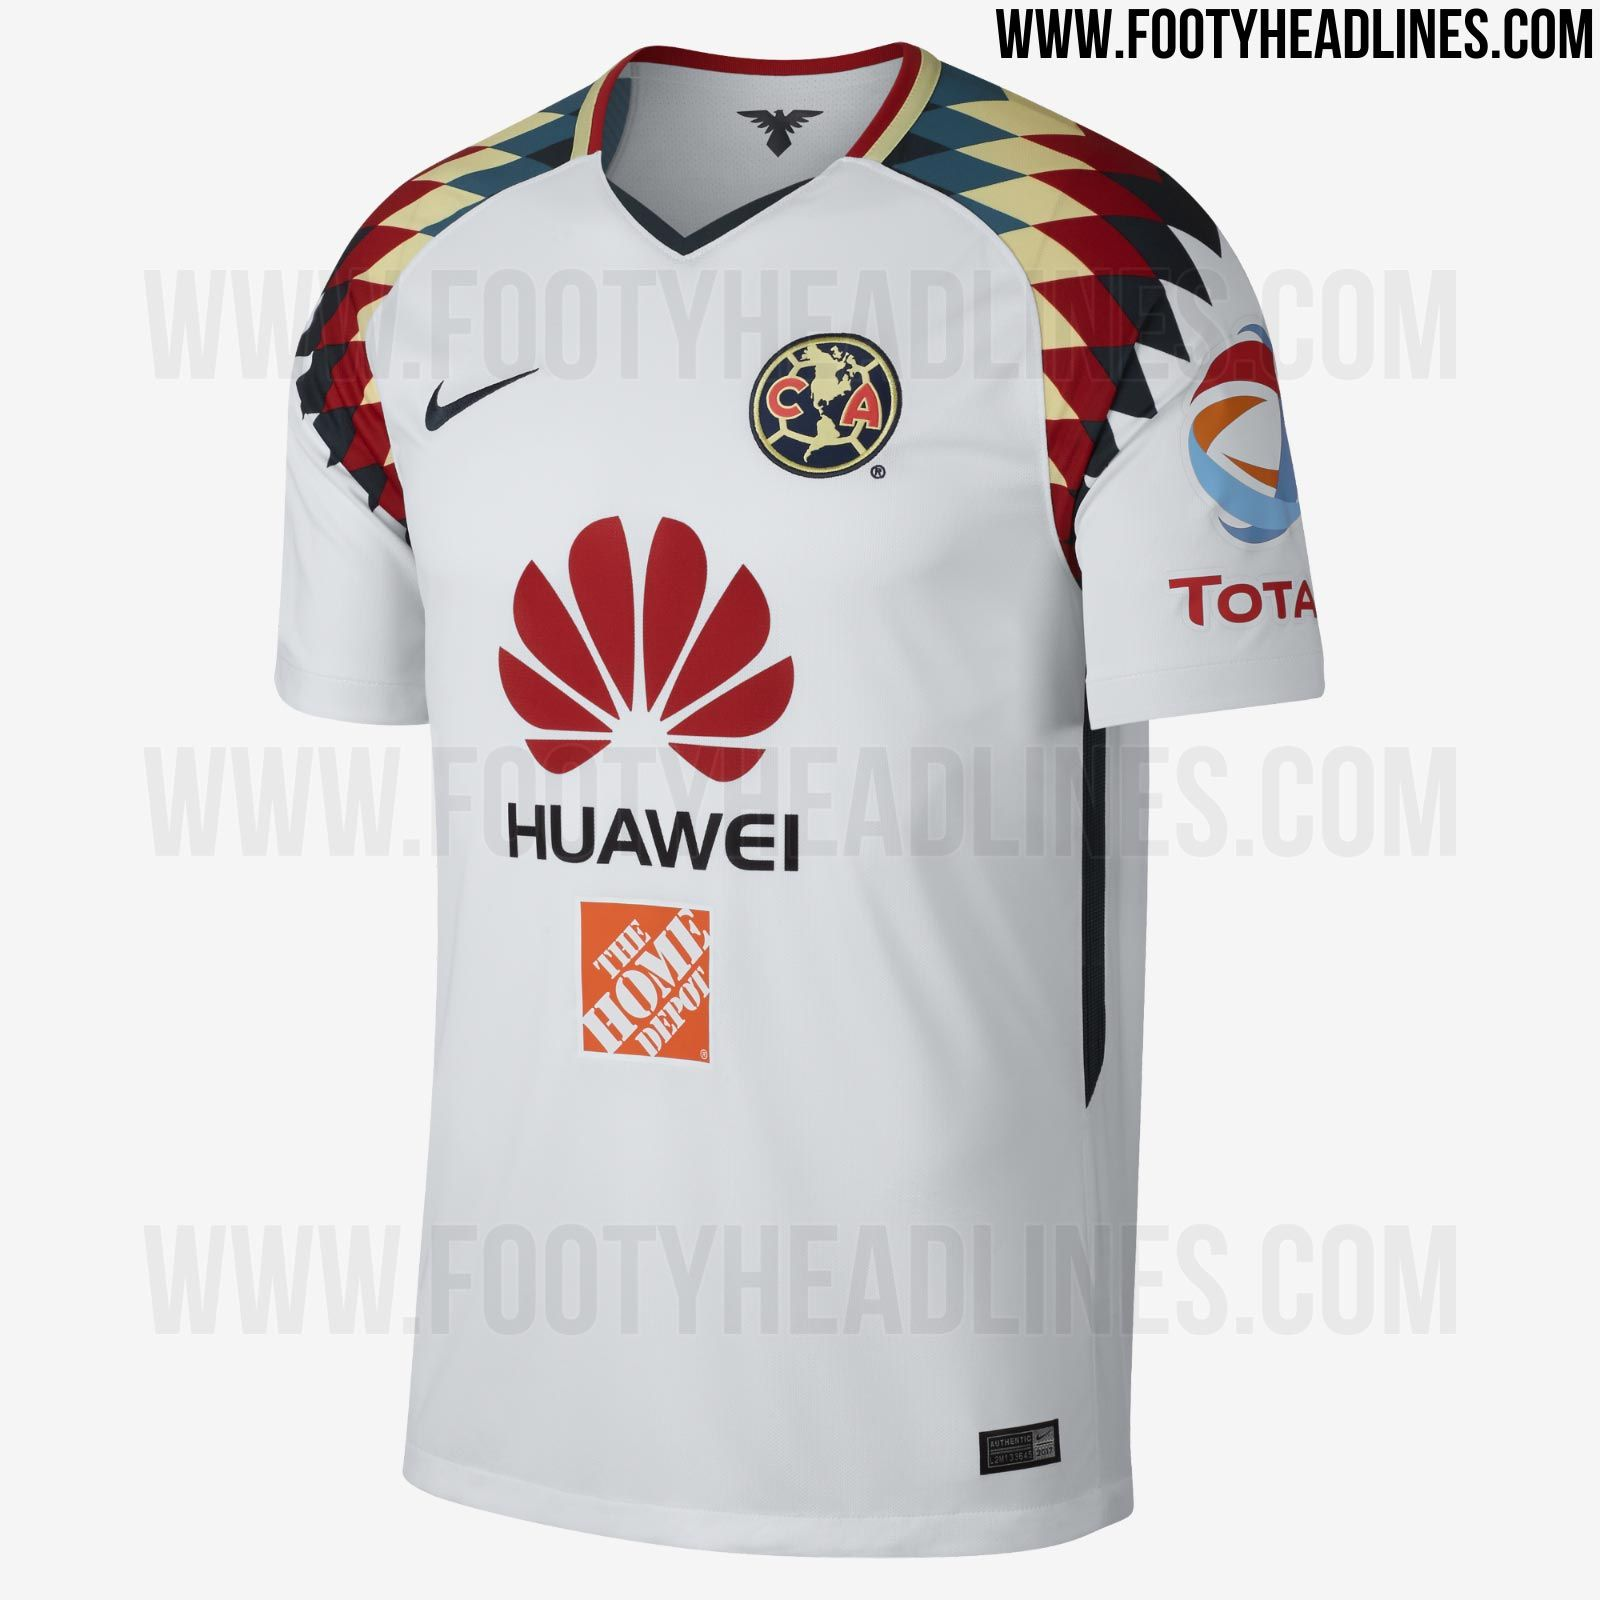 e7a08df619d The new Nike Club America 2017-2018 away jersey boasts an outstanding  design.